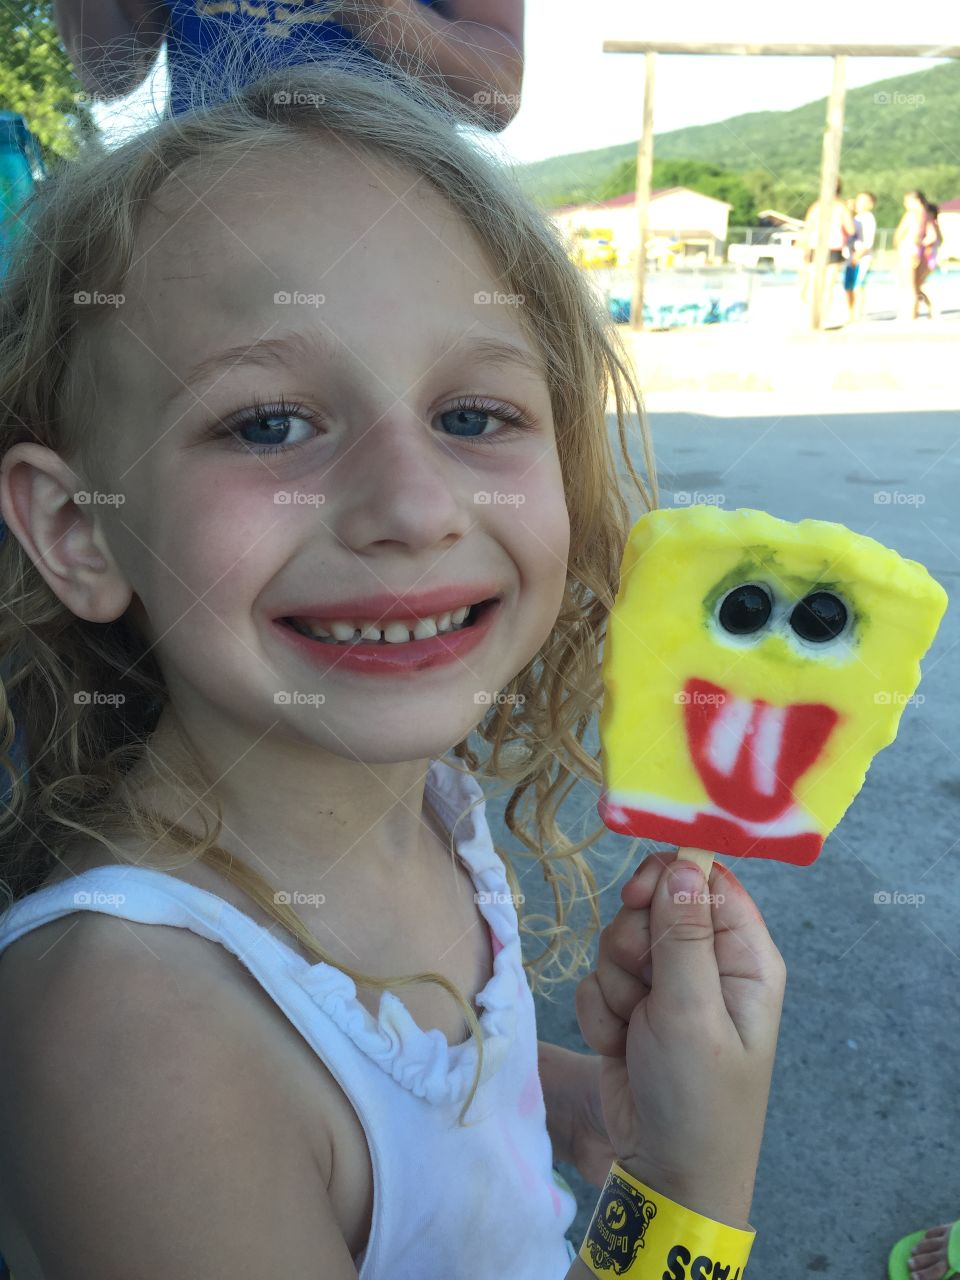 Little girl holding popsicle in hand